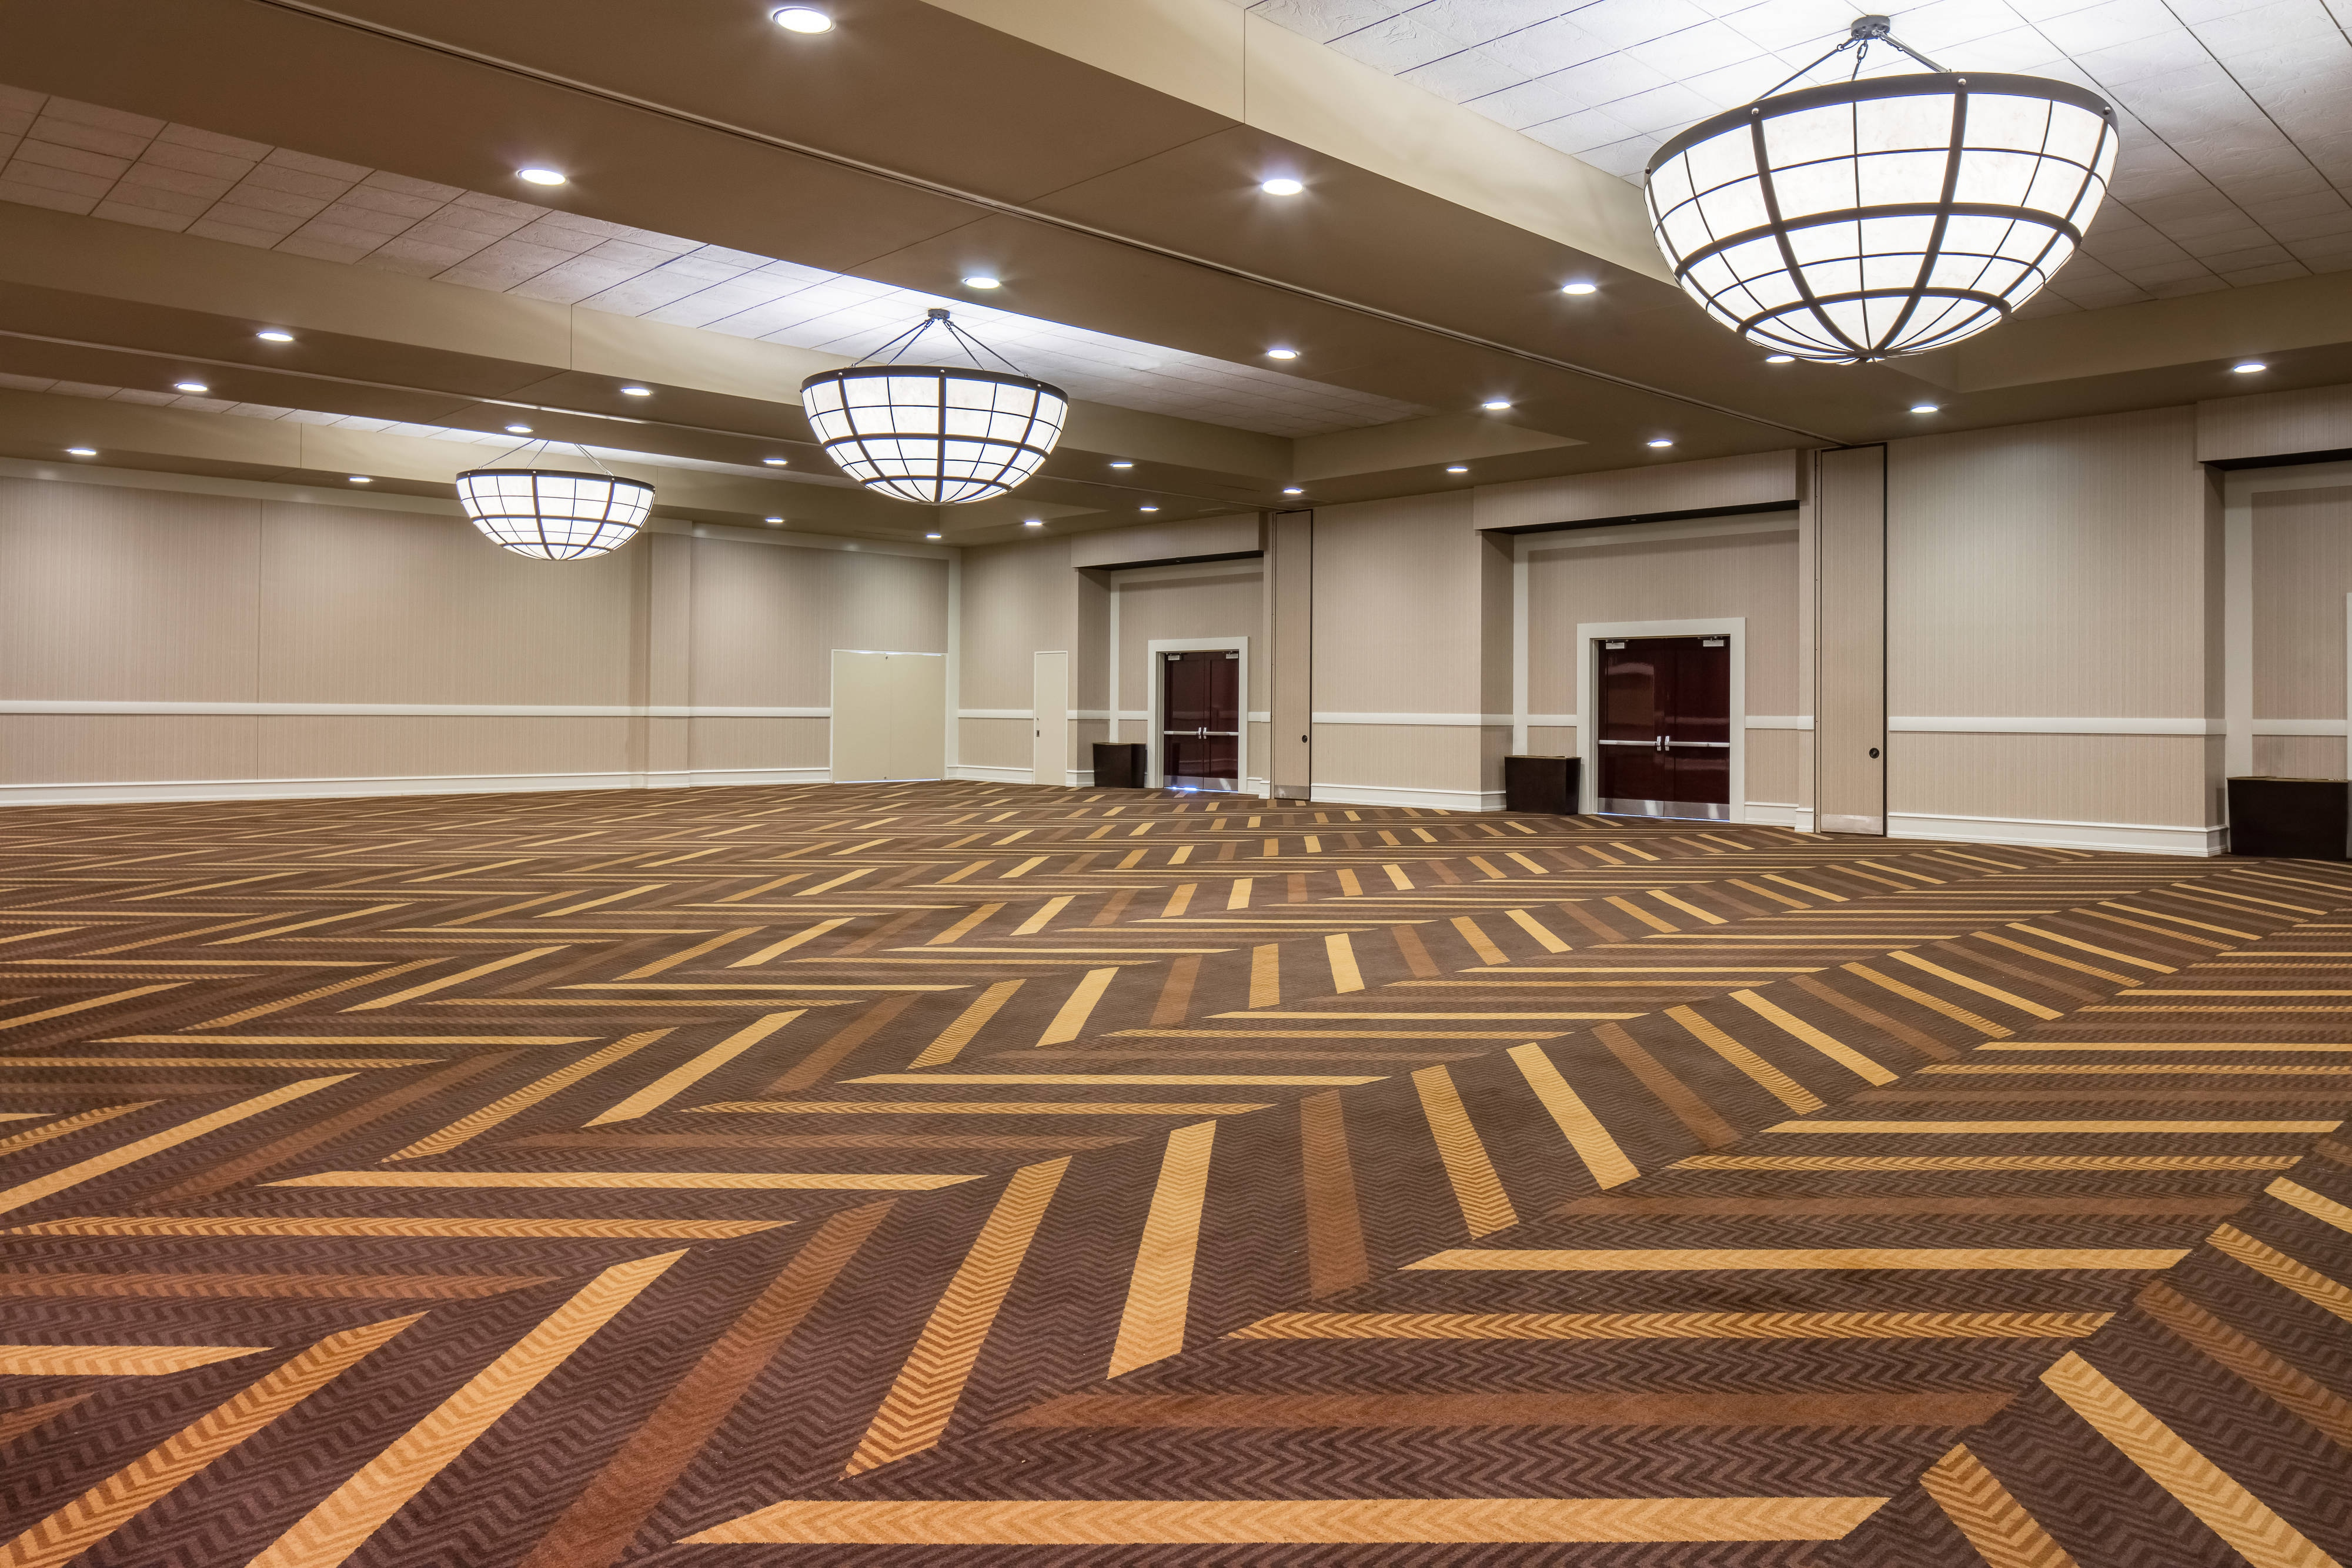 Leatherwood Ballroom